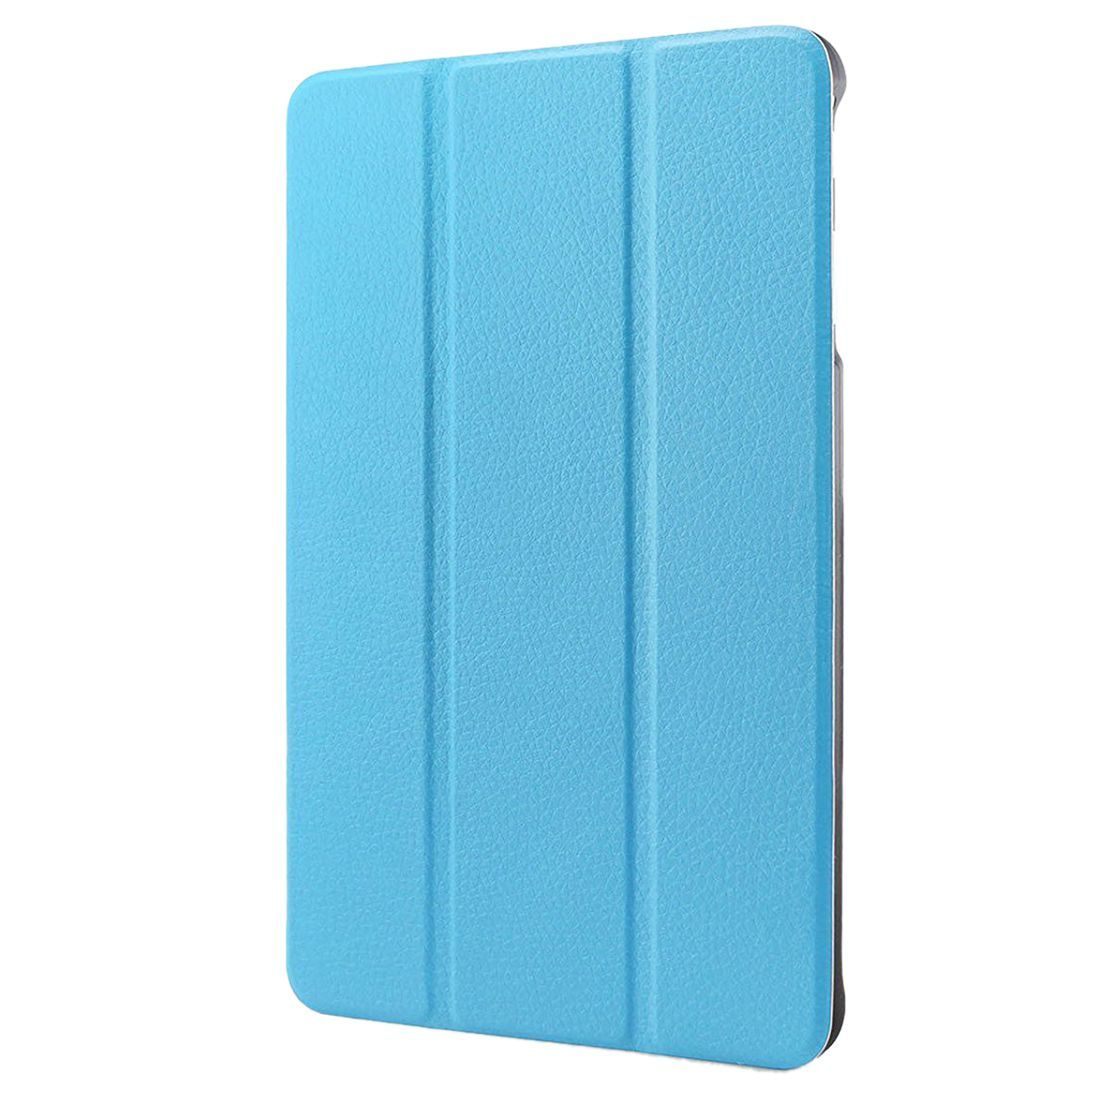 Slim Smart Cover Case for Samsung Galaxy Tab E 9.6-Inch (Blue) #Affiliate